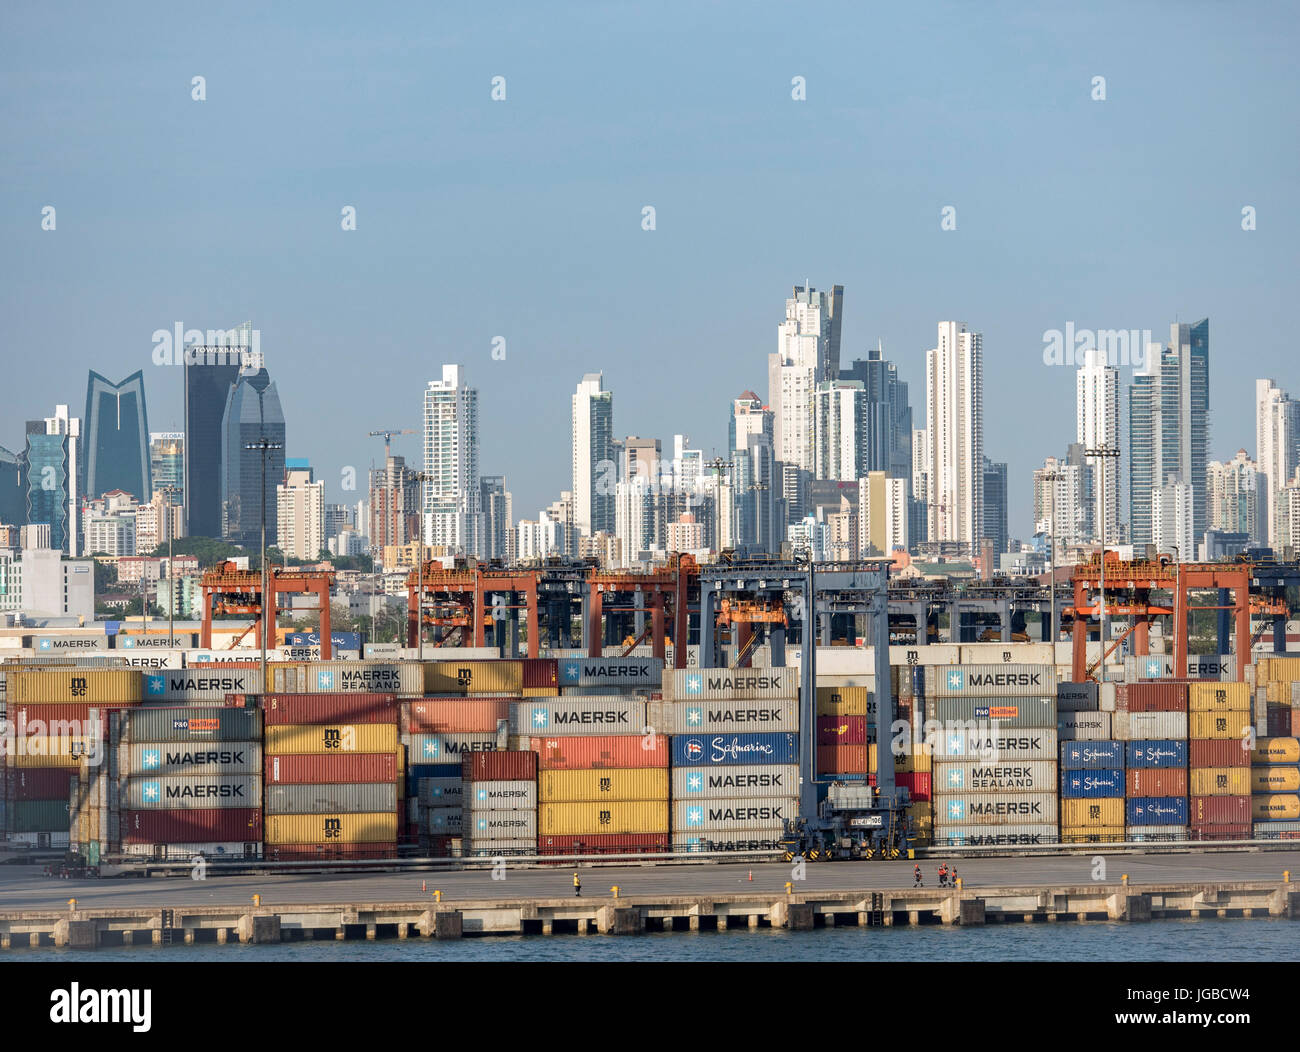 Shipping Containers At The Port Of Bilboa And Panama City Skyline On The Entrance To The Panama Canal Stock Photo